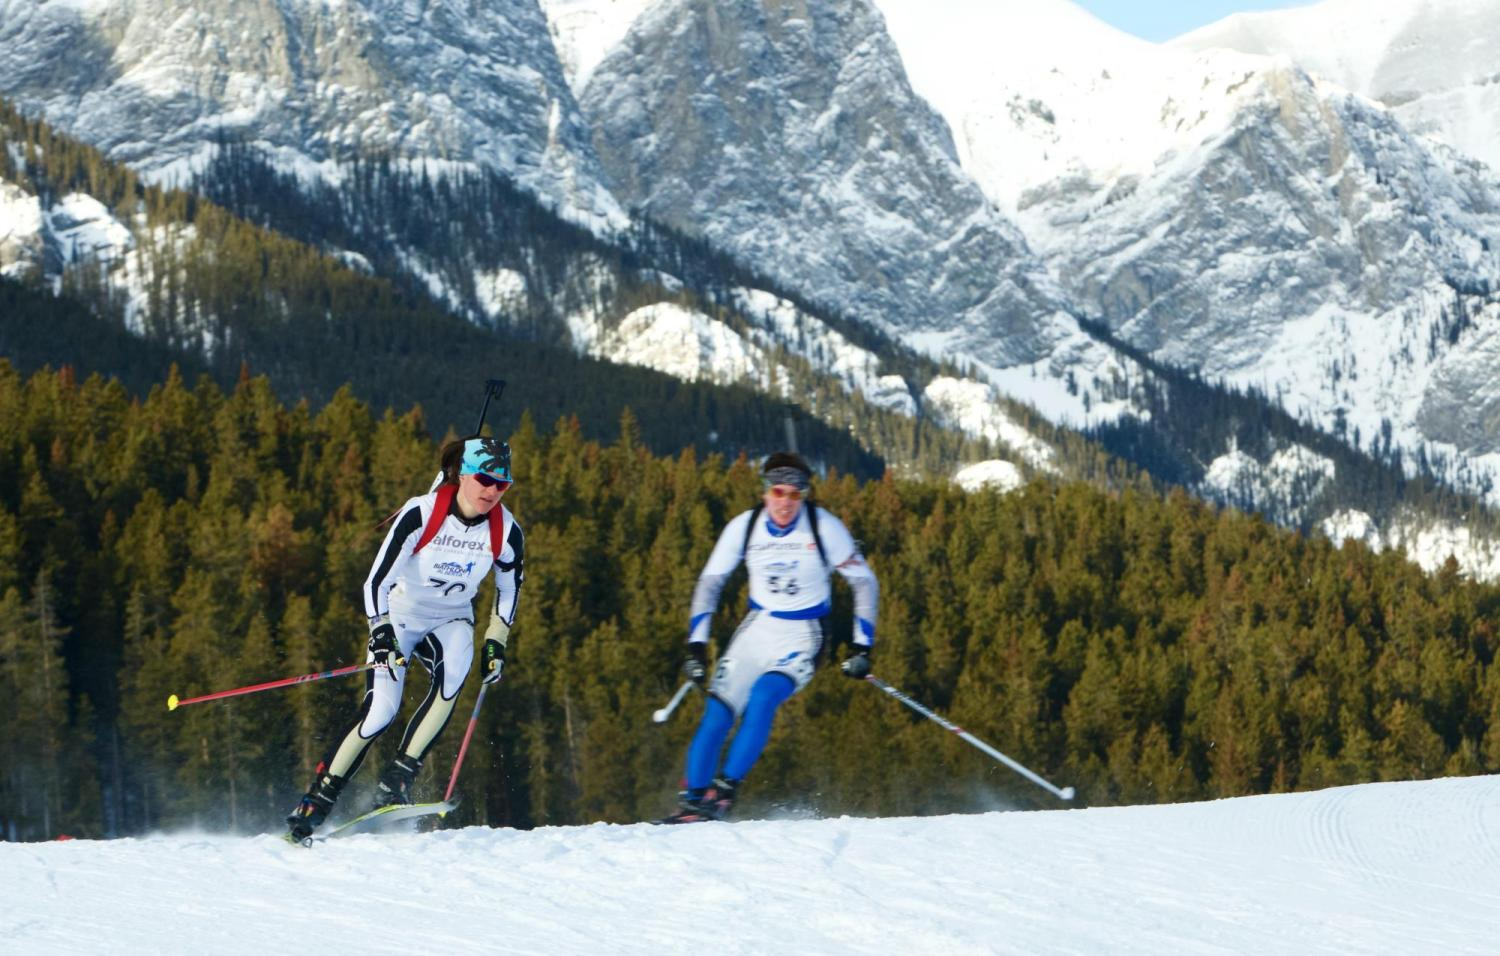 Photo of Joanna Reid skiing in mountains during biathlon